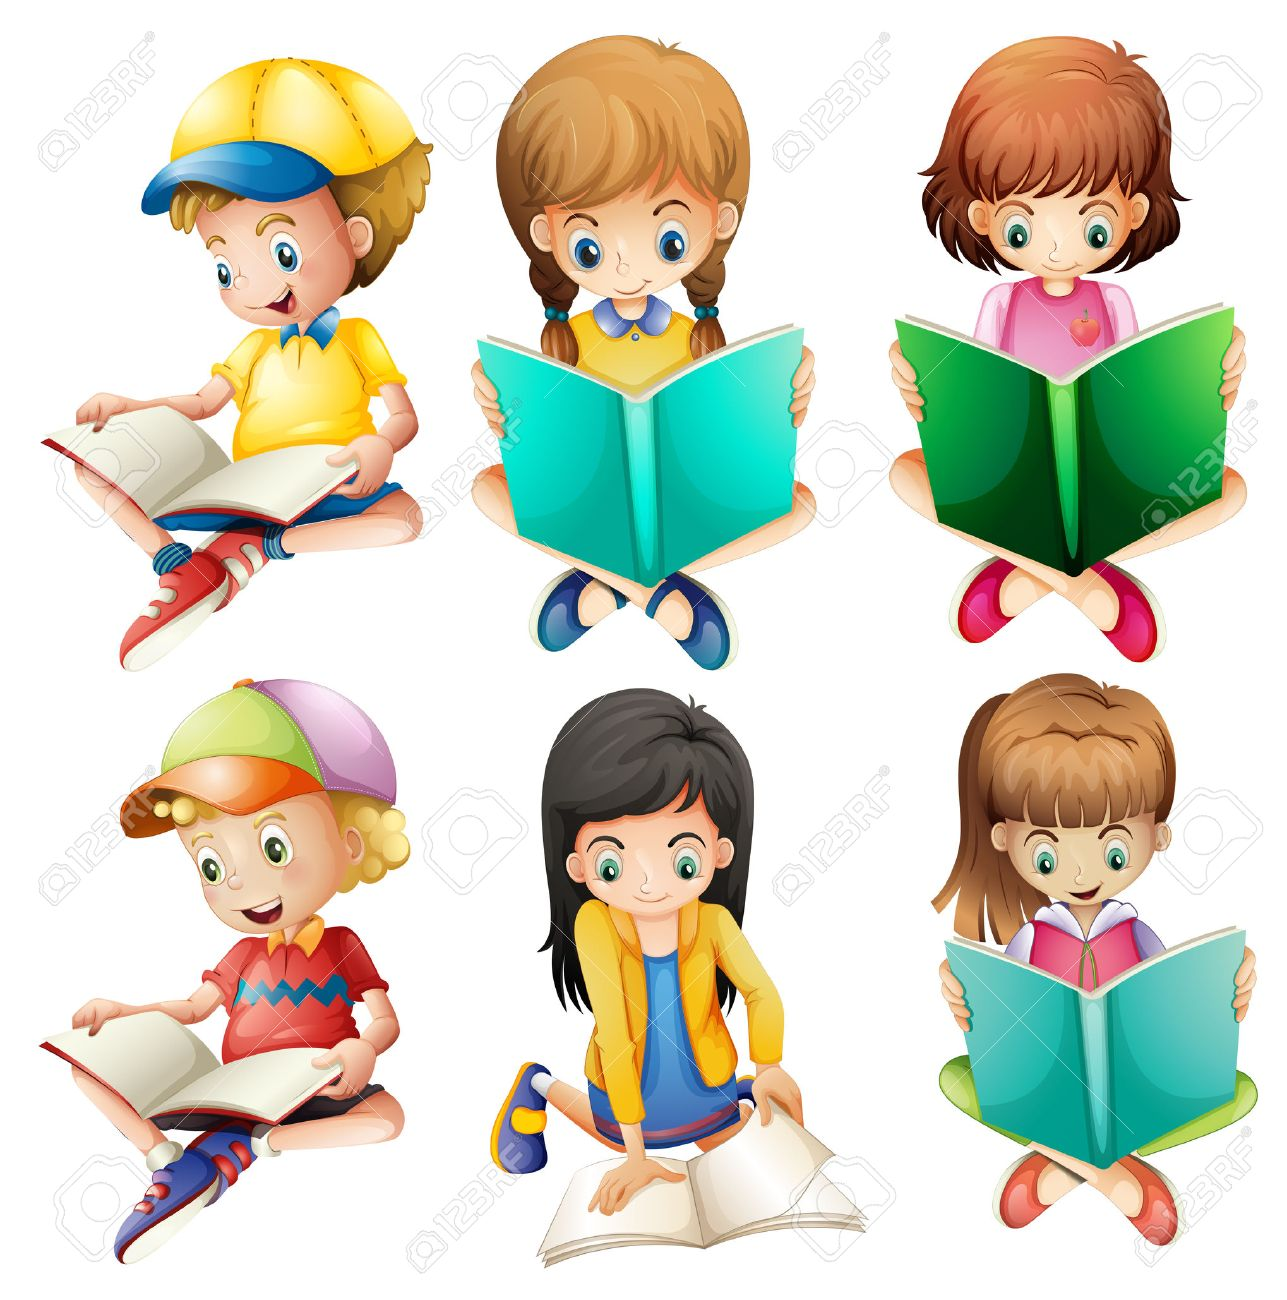 Illustration of the kids reading on a white background Stock Vector - 28193090